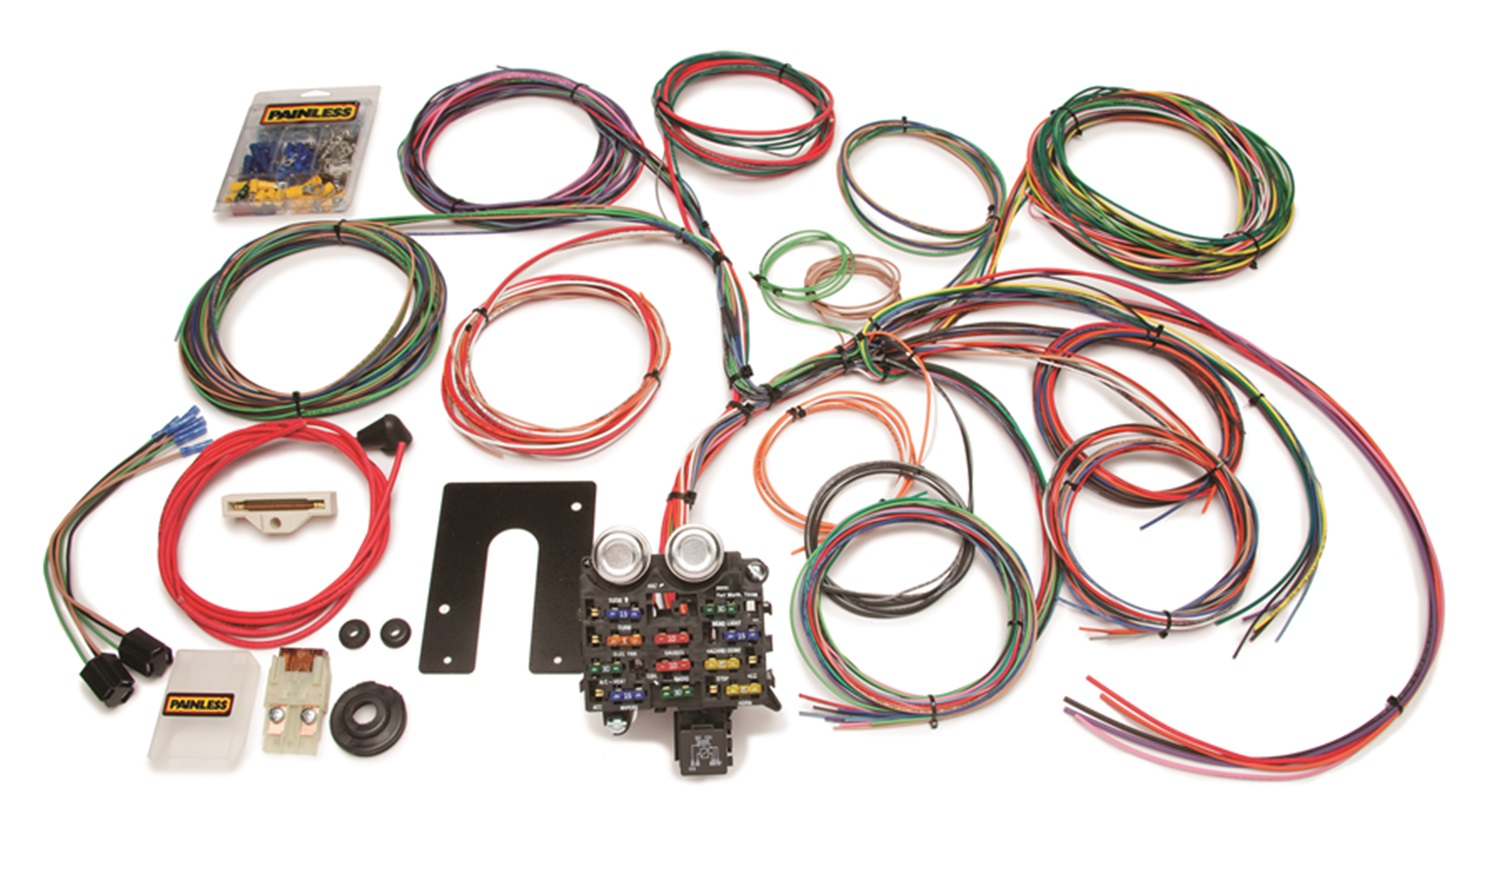 painless wiring 10105 chassis wiring harness walmart canada grommets wiring harness type page 56 [ 1500 x 870 Pixel ]